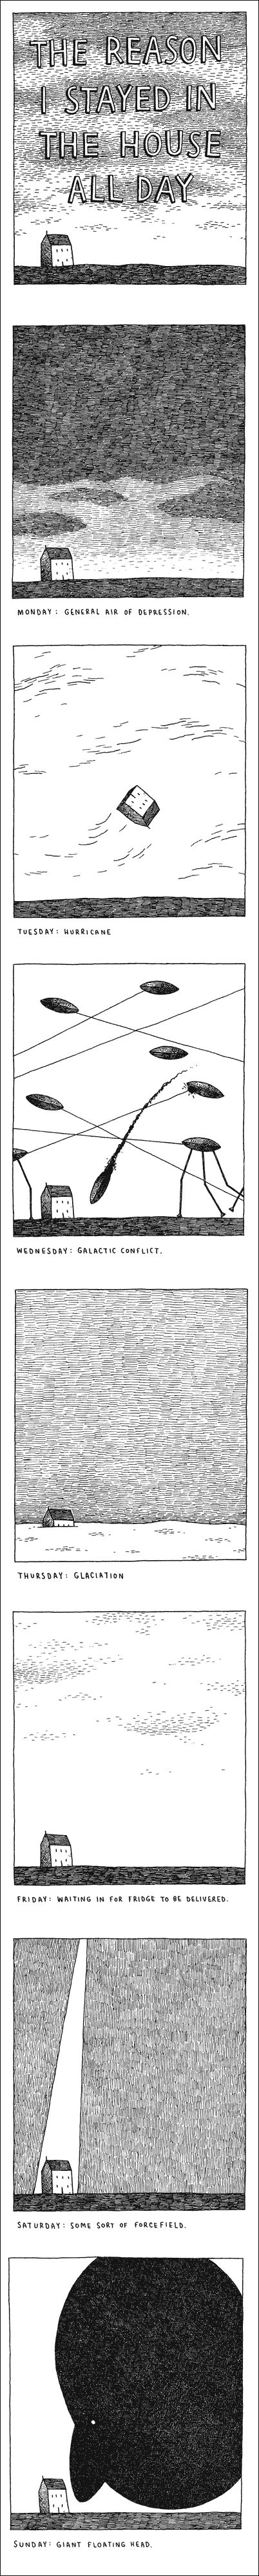 Tom Gauld. Ideas: Use a number of panels to try and tell a story. Keep your drawings simple and to the point. Use smaller controlled lines to describe texture.